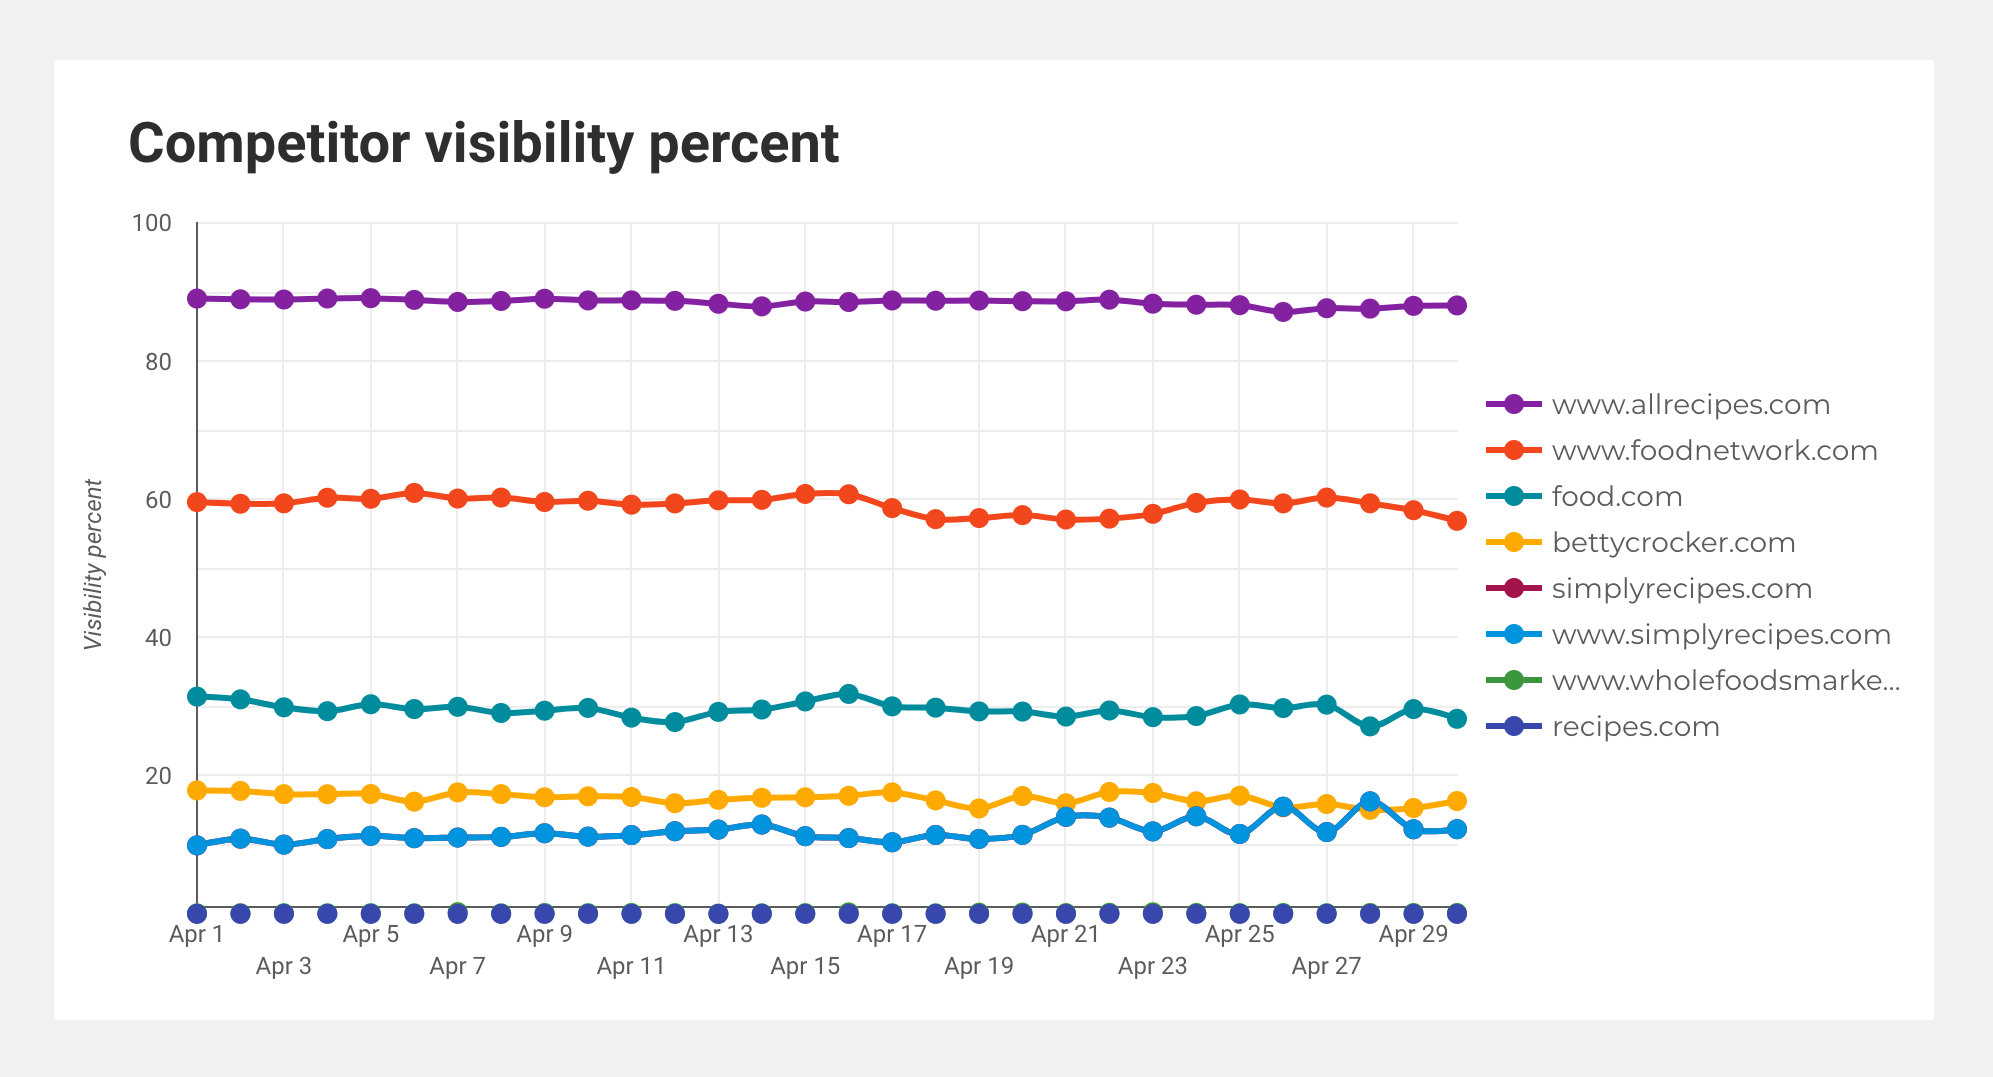 Chart screenshot showing last month's visibility percent for multiple competitors.